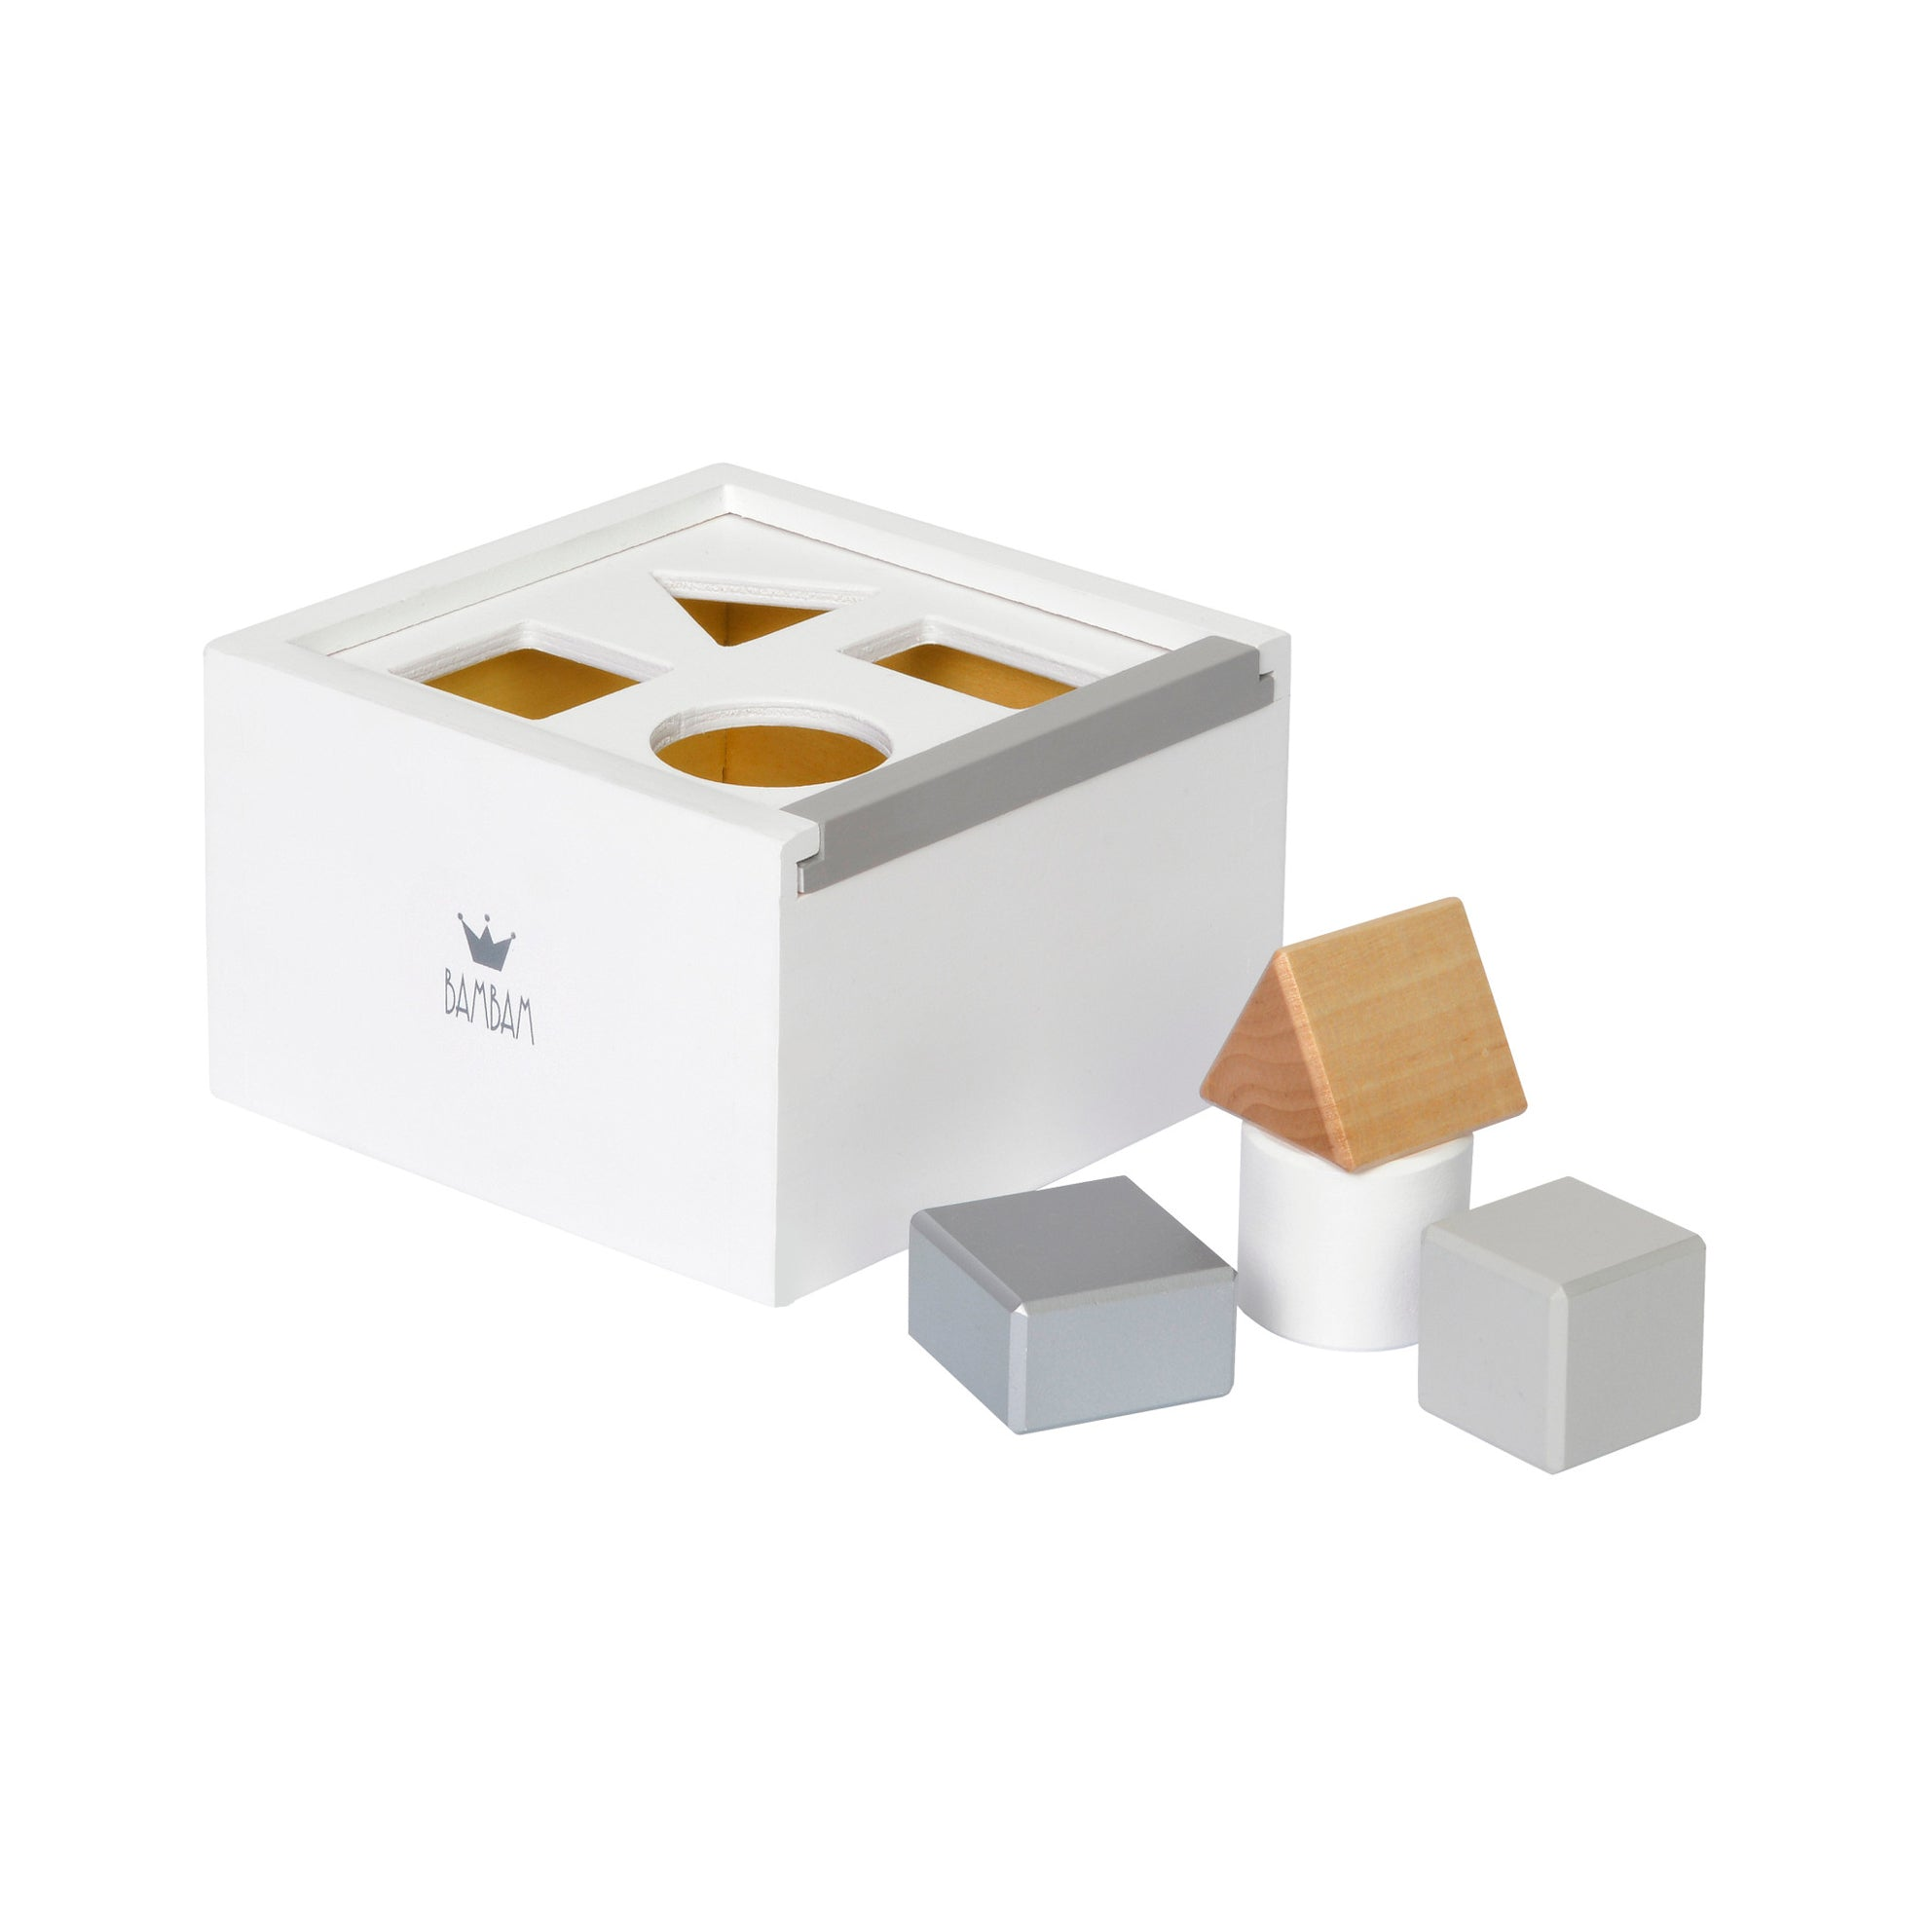 BAMBAM 'Shape Sorter' Block Box